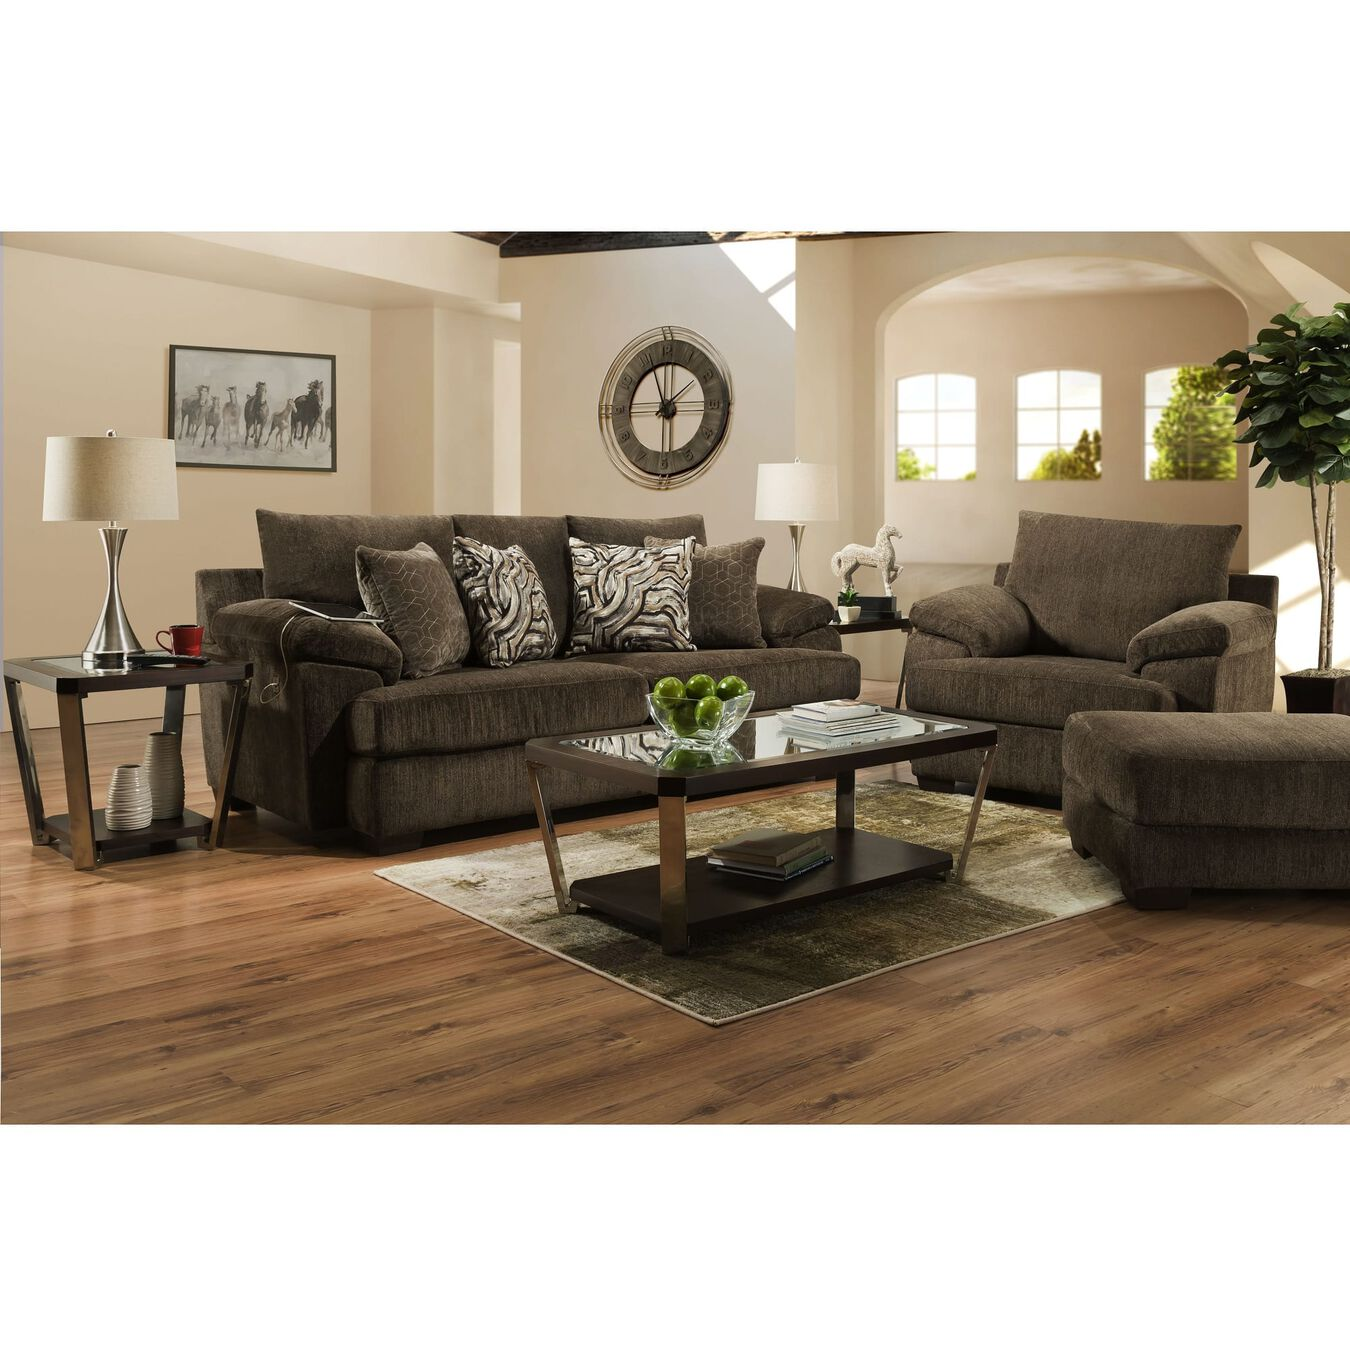 Franklin living room sets 3 piece phoenix living room collection